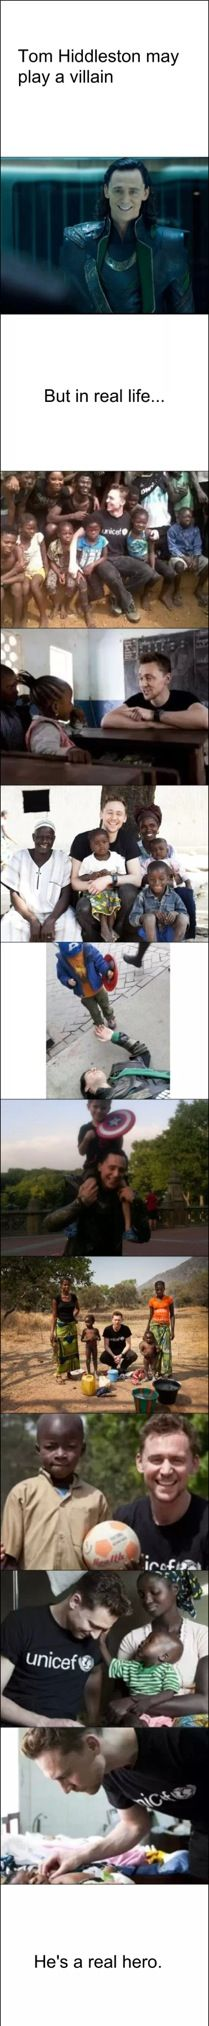 Hiddles plays a villain, but in real life he's a hero!